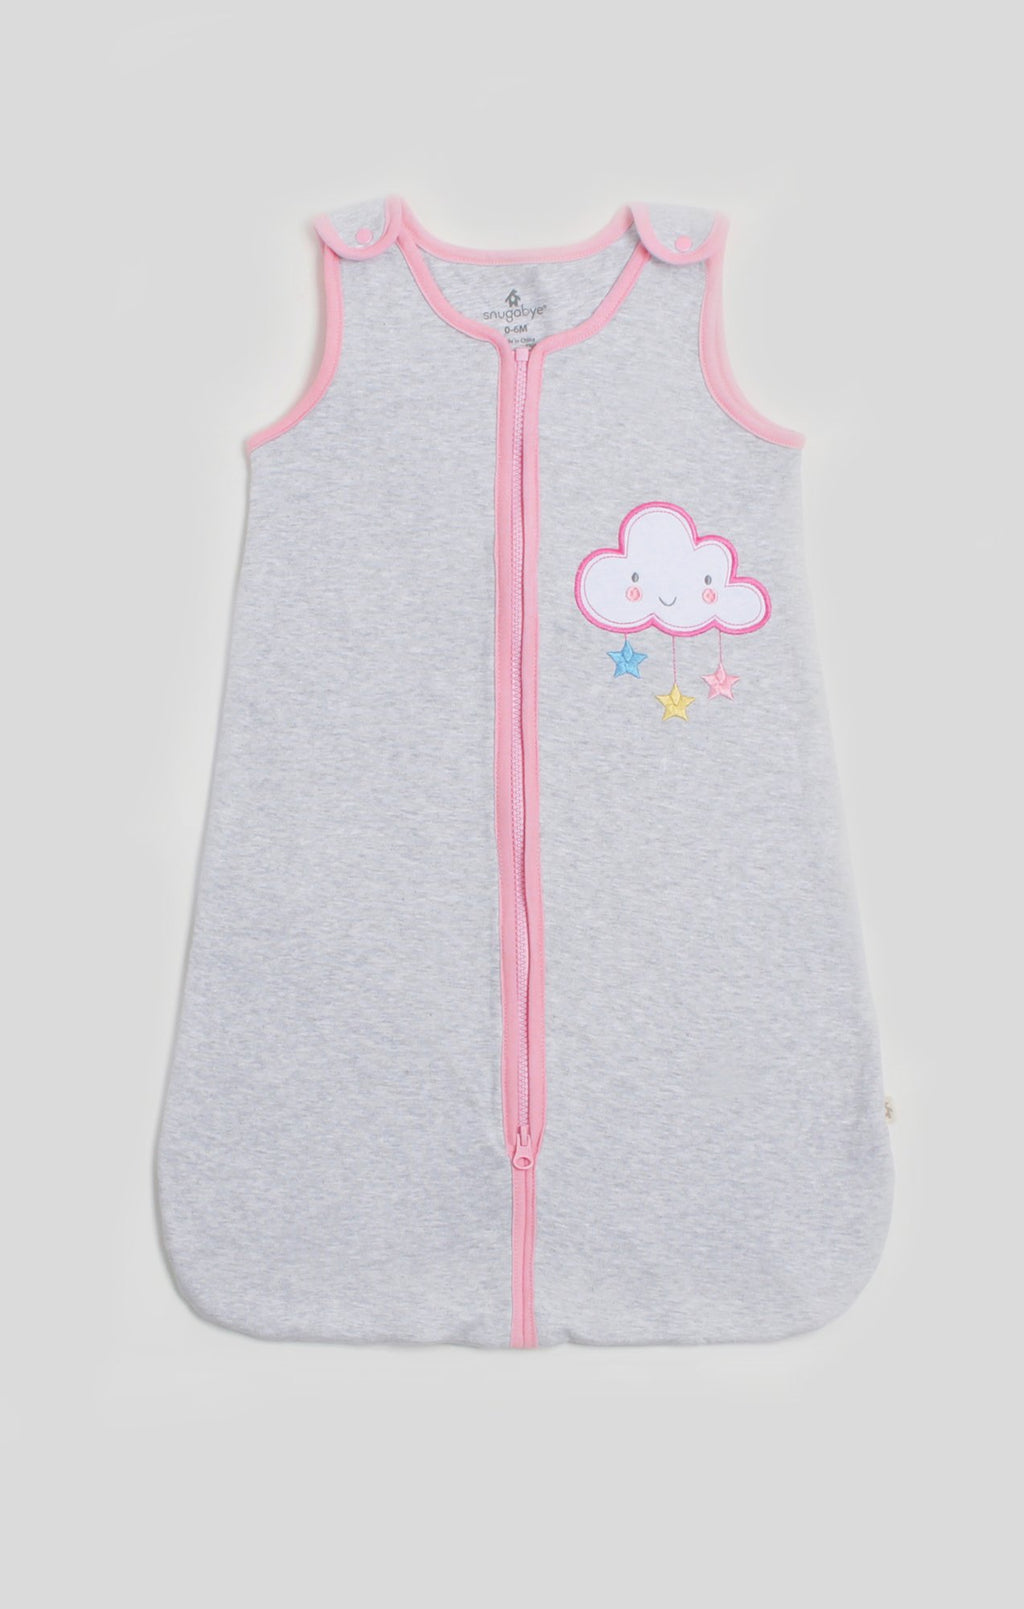 Baby Sleep Sack - Pink Cloud Sleep Bag